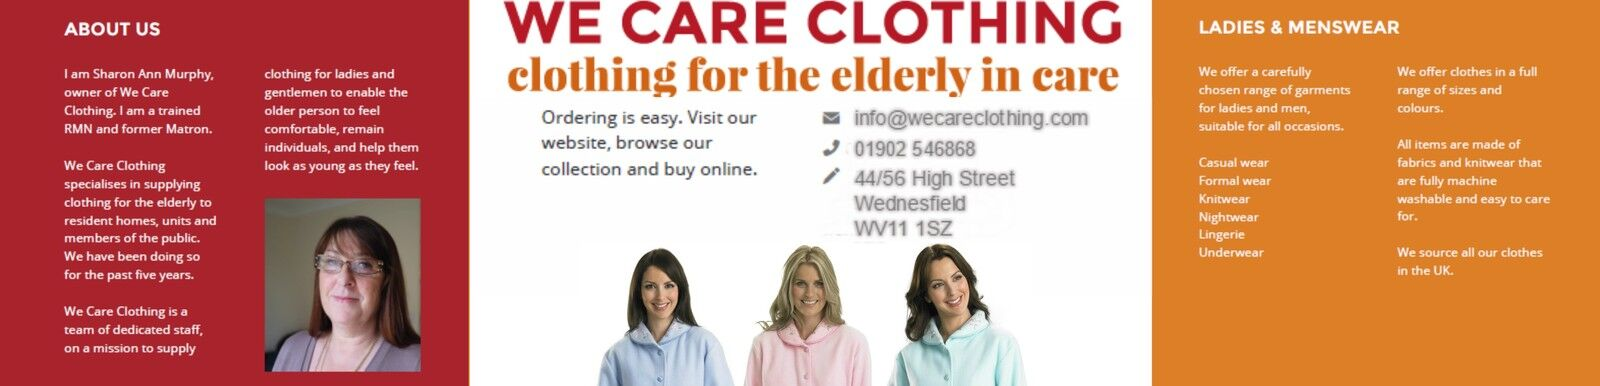 We Care Clothing